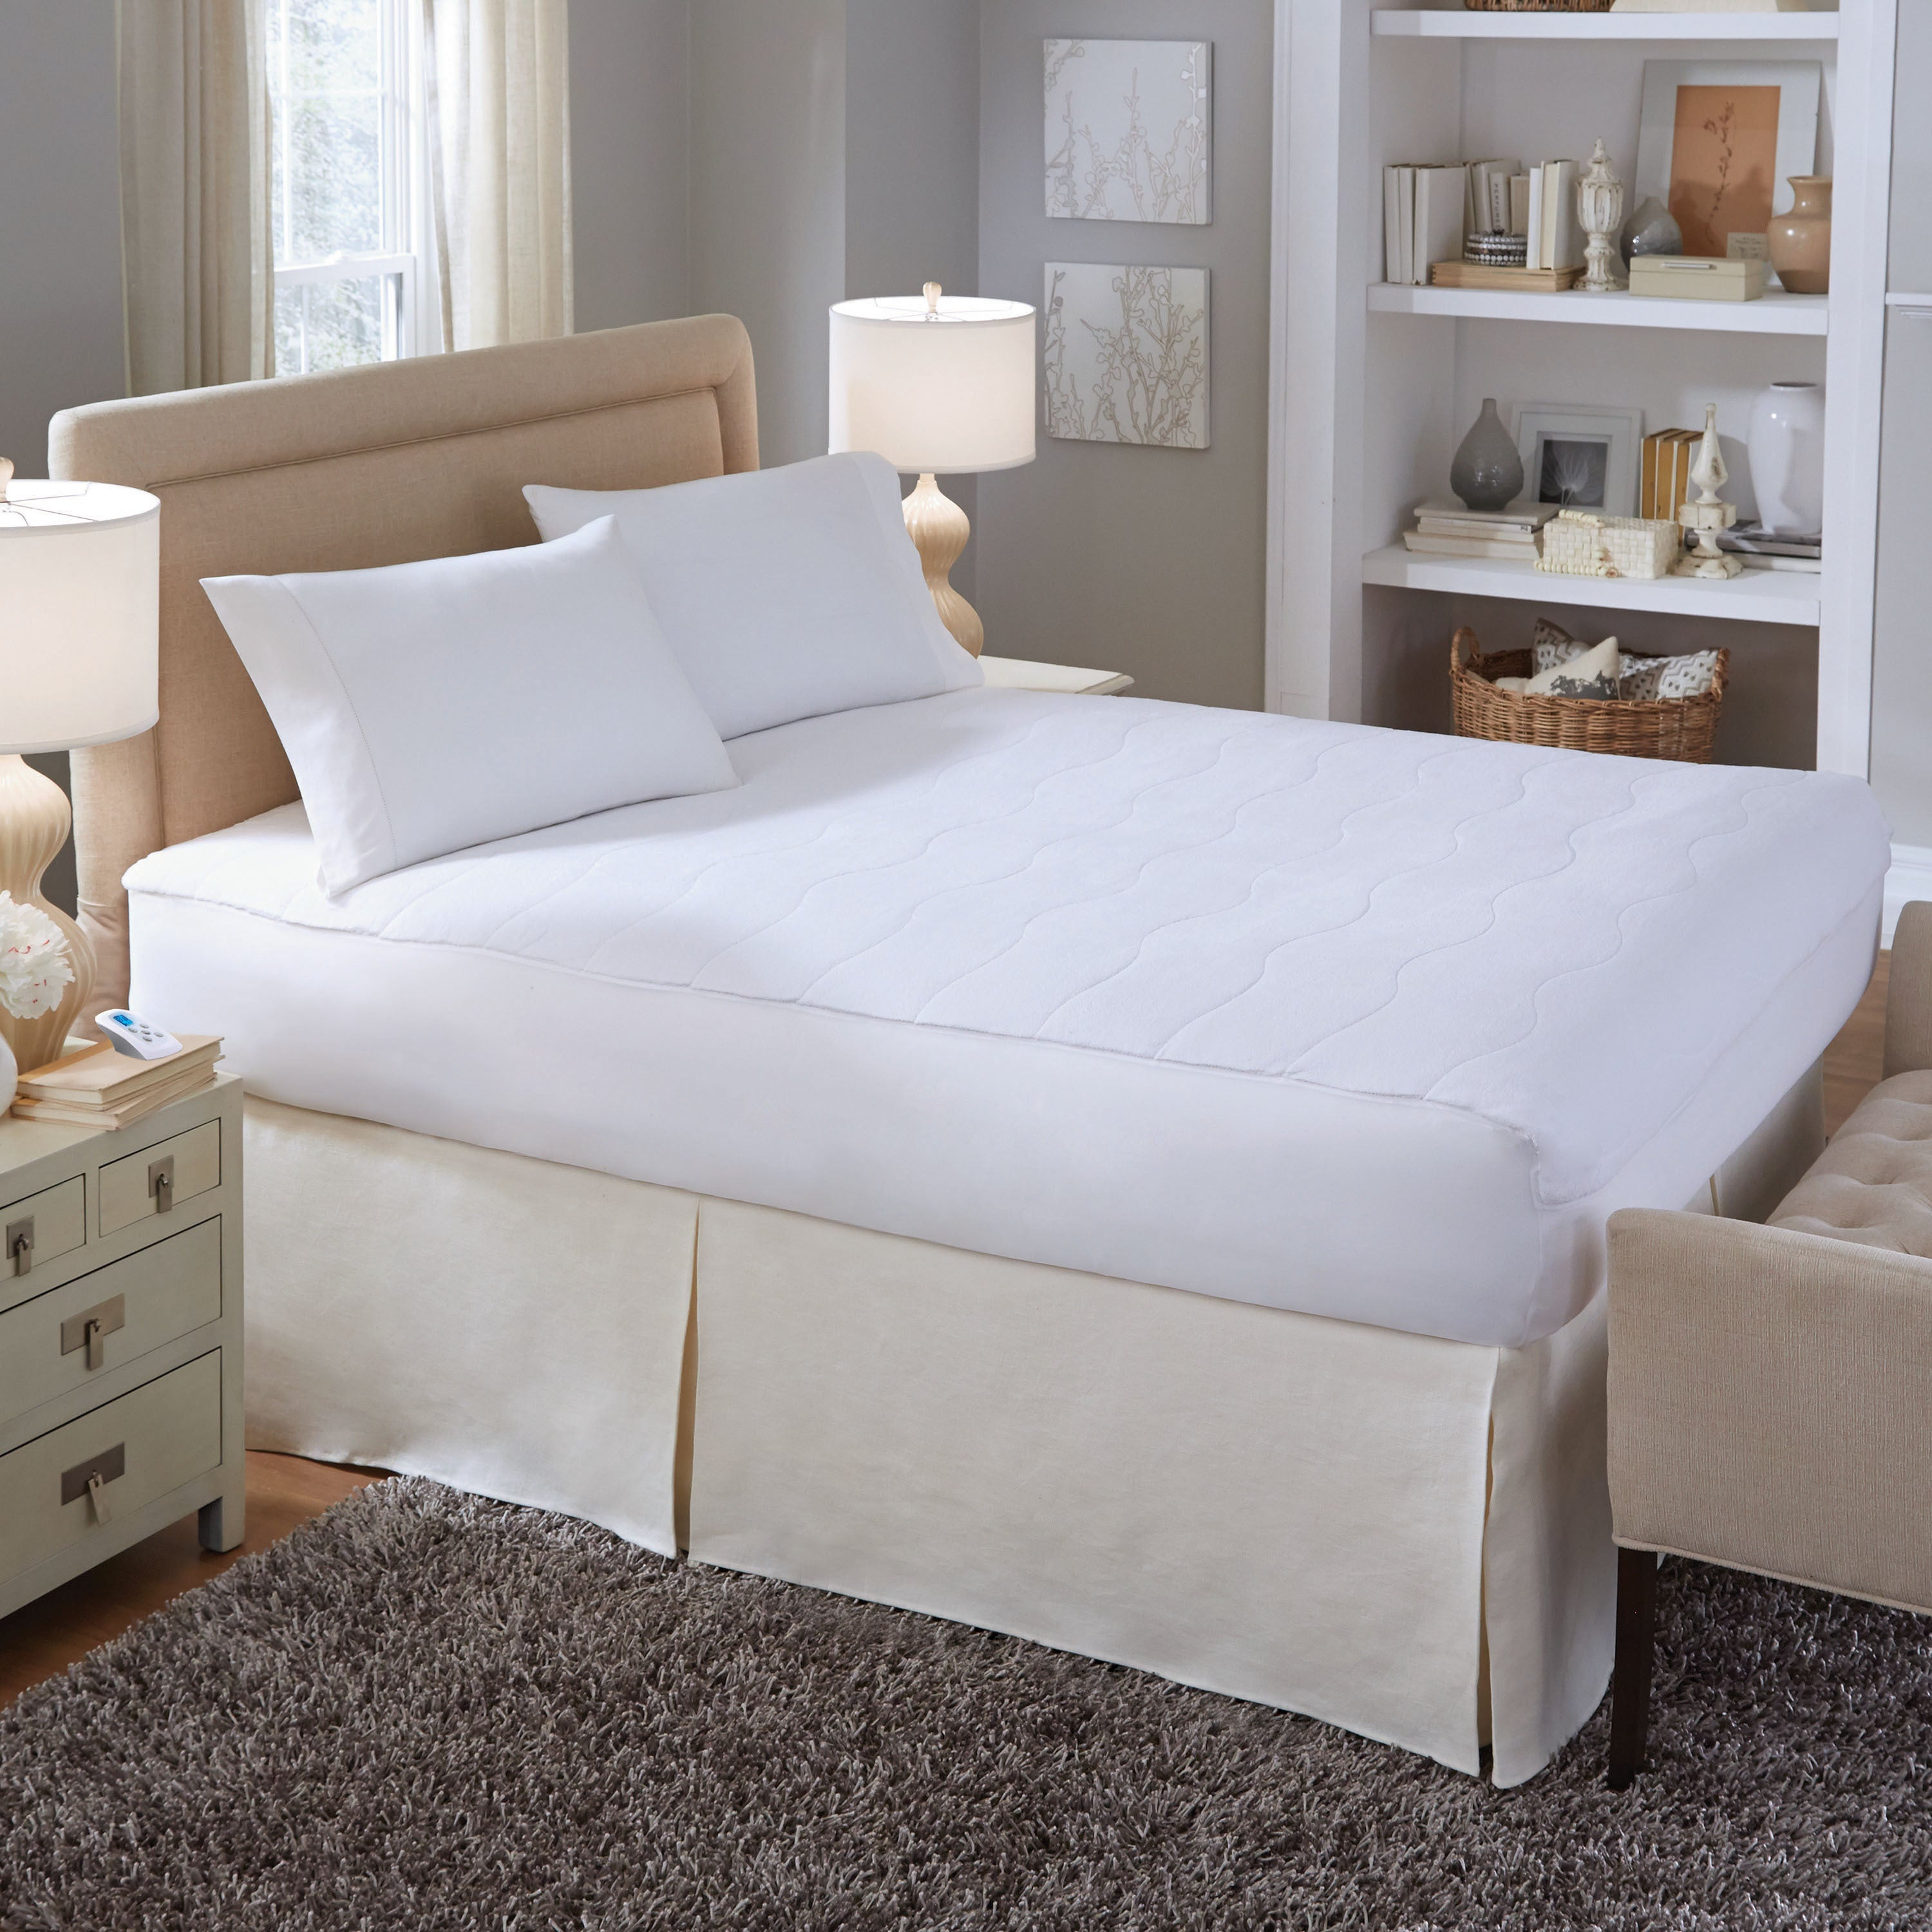 Shop Serta Electric Microplush 110 Voltage Heated Mattress Pad   On Sale    Free Shipping Today   Overstock.com   10643135